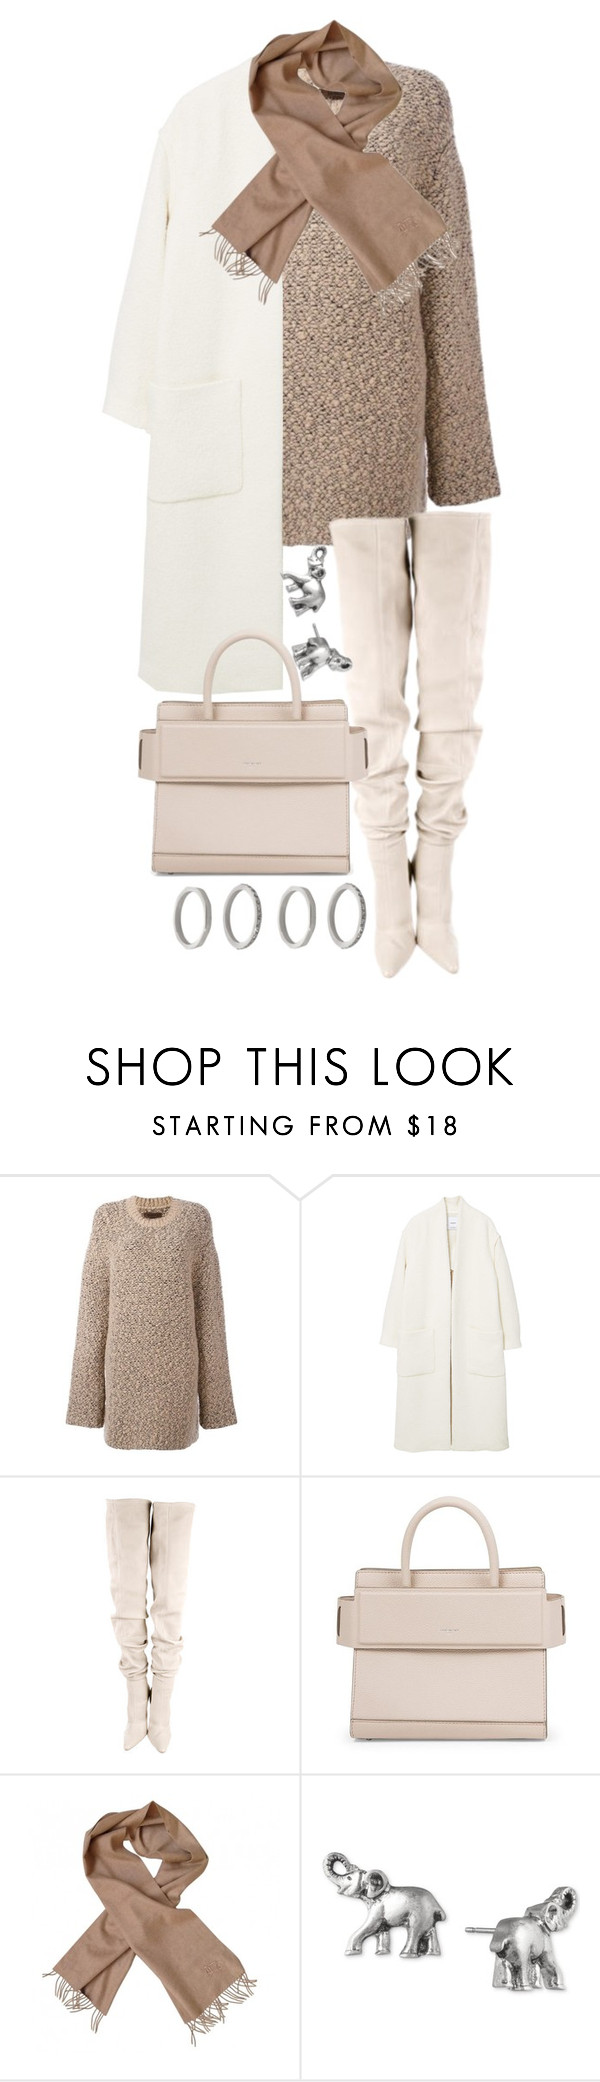 """""""Untitled #20965"""" by florencia95 ❤ liked on Polyvore featuring adidas Originals, MANGO, Gianvito Rossi, Givenchy, Burberry, Lonna & Lilly and Forever 21"""